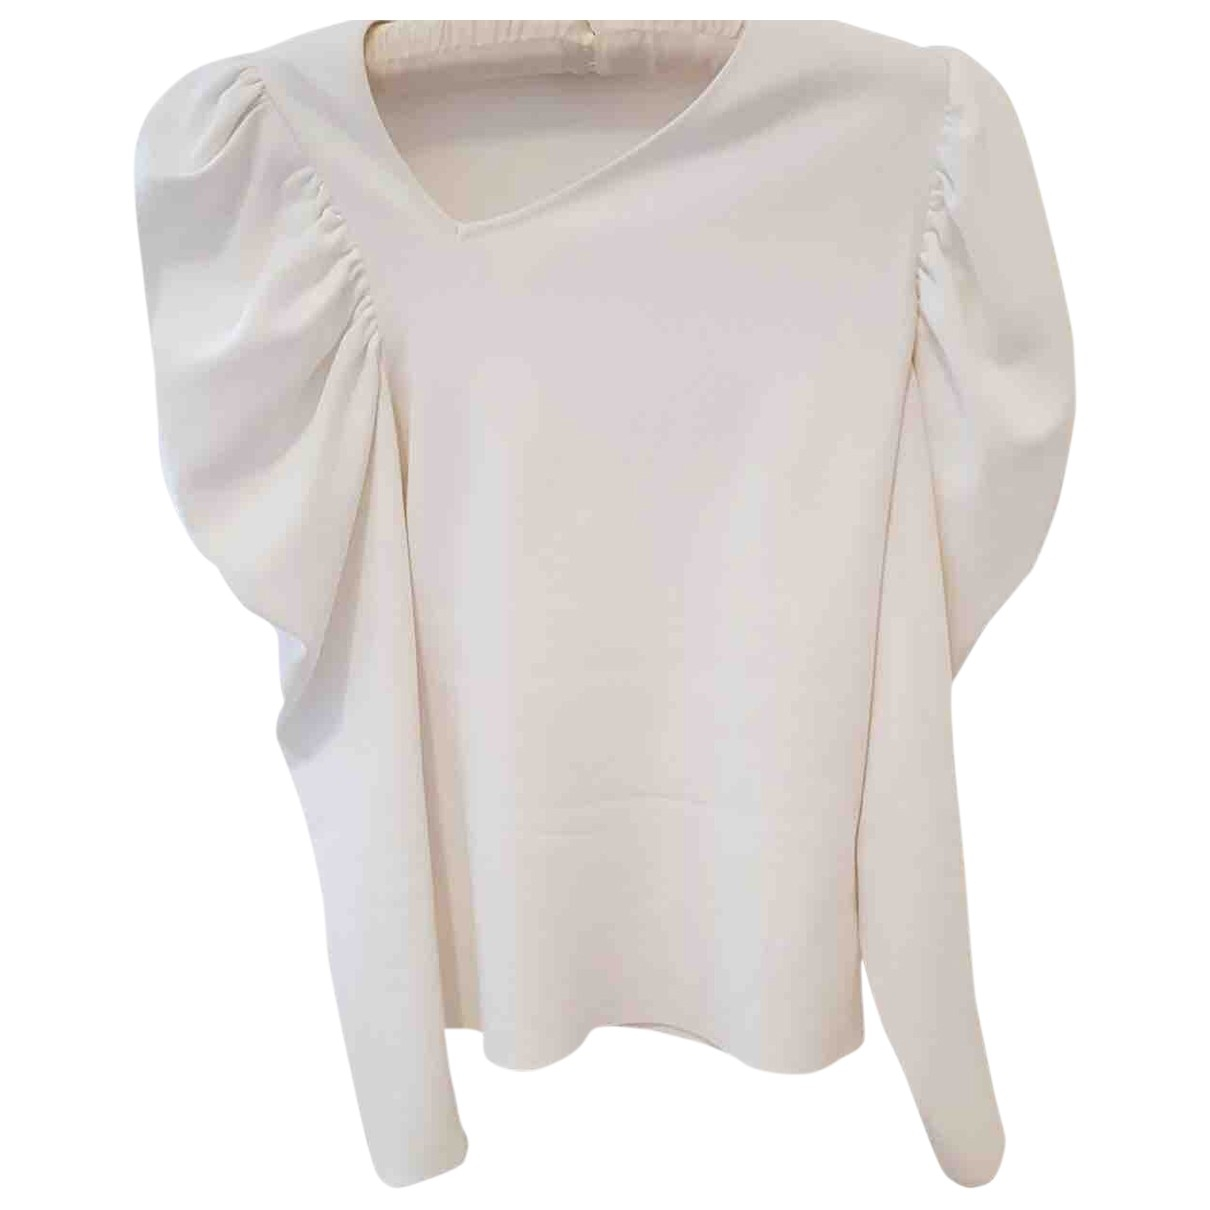 Stella Mccartney \N White  top for Women 40 IT